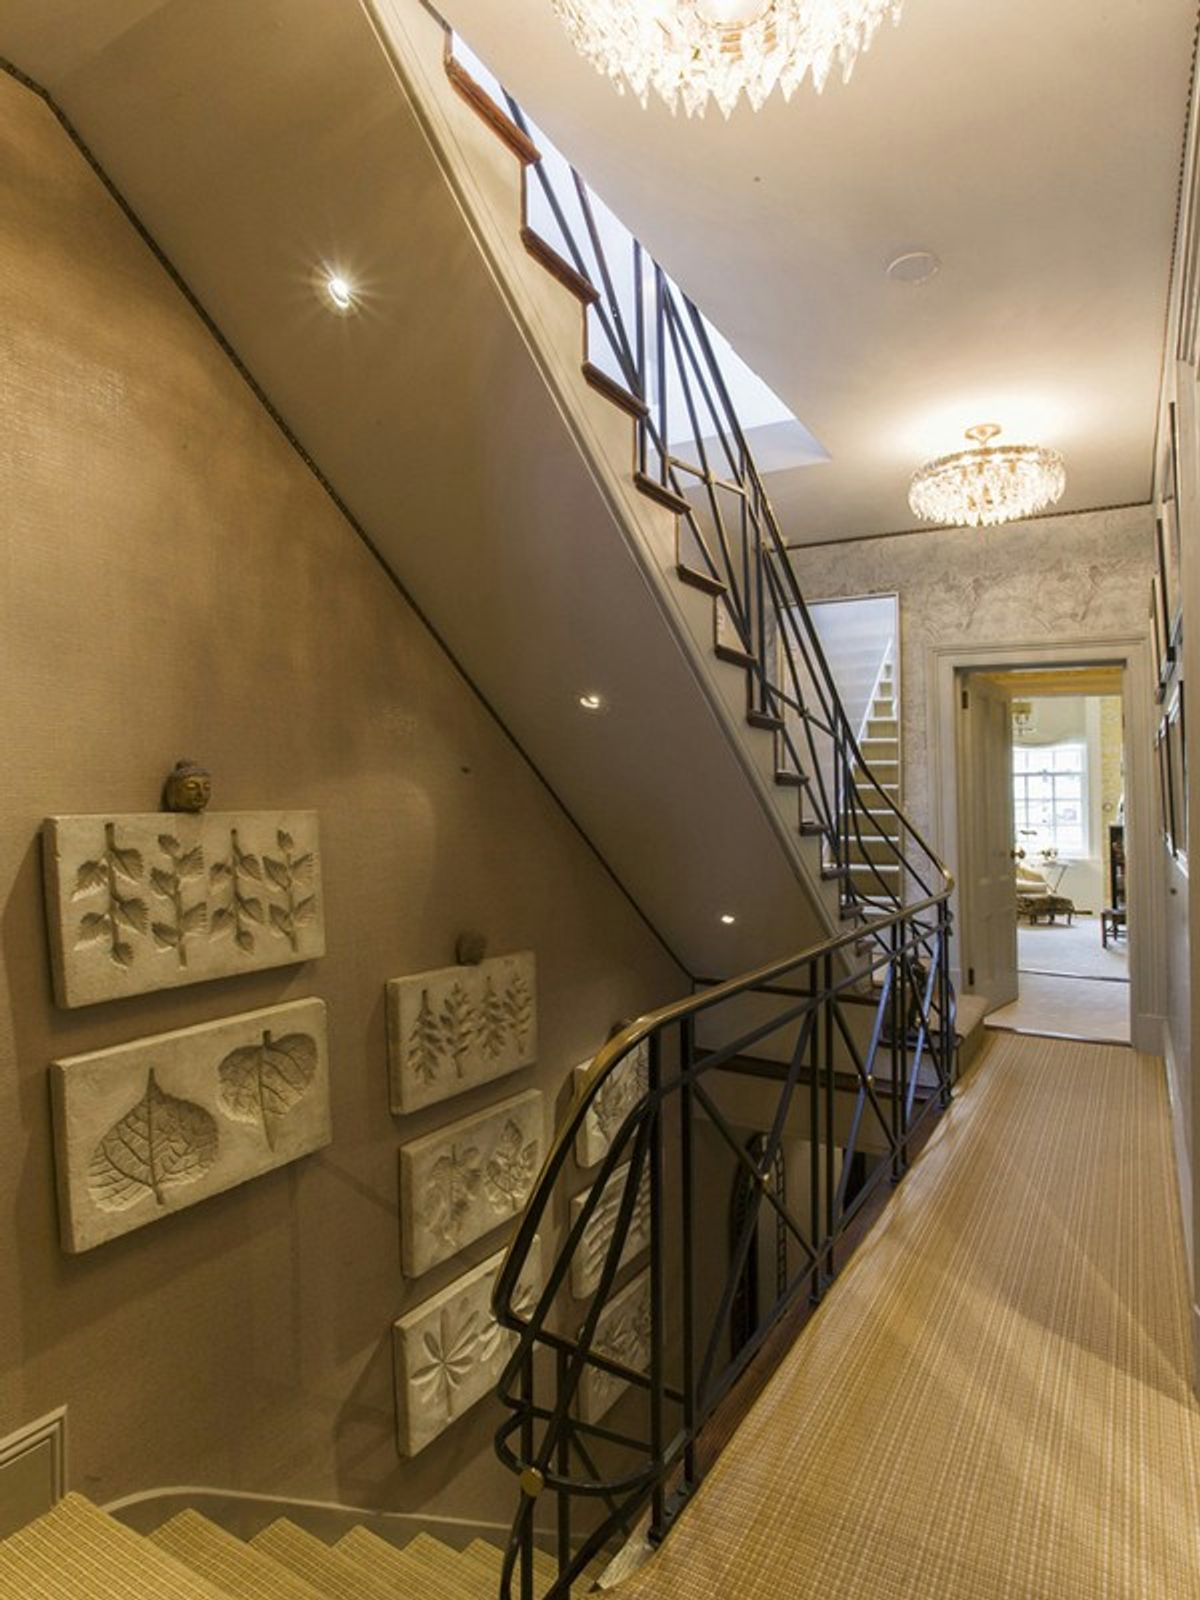 The 2013 Kips Bay Decorator Show House